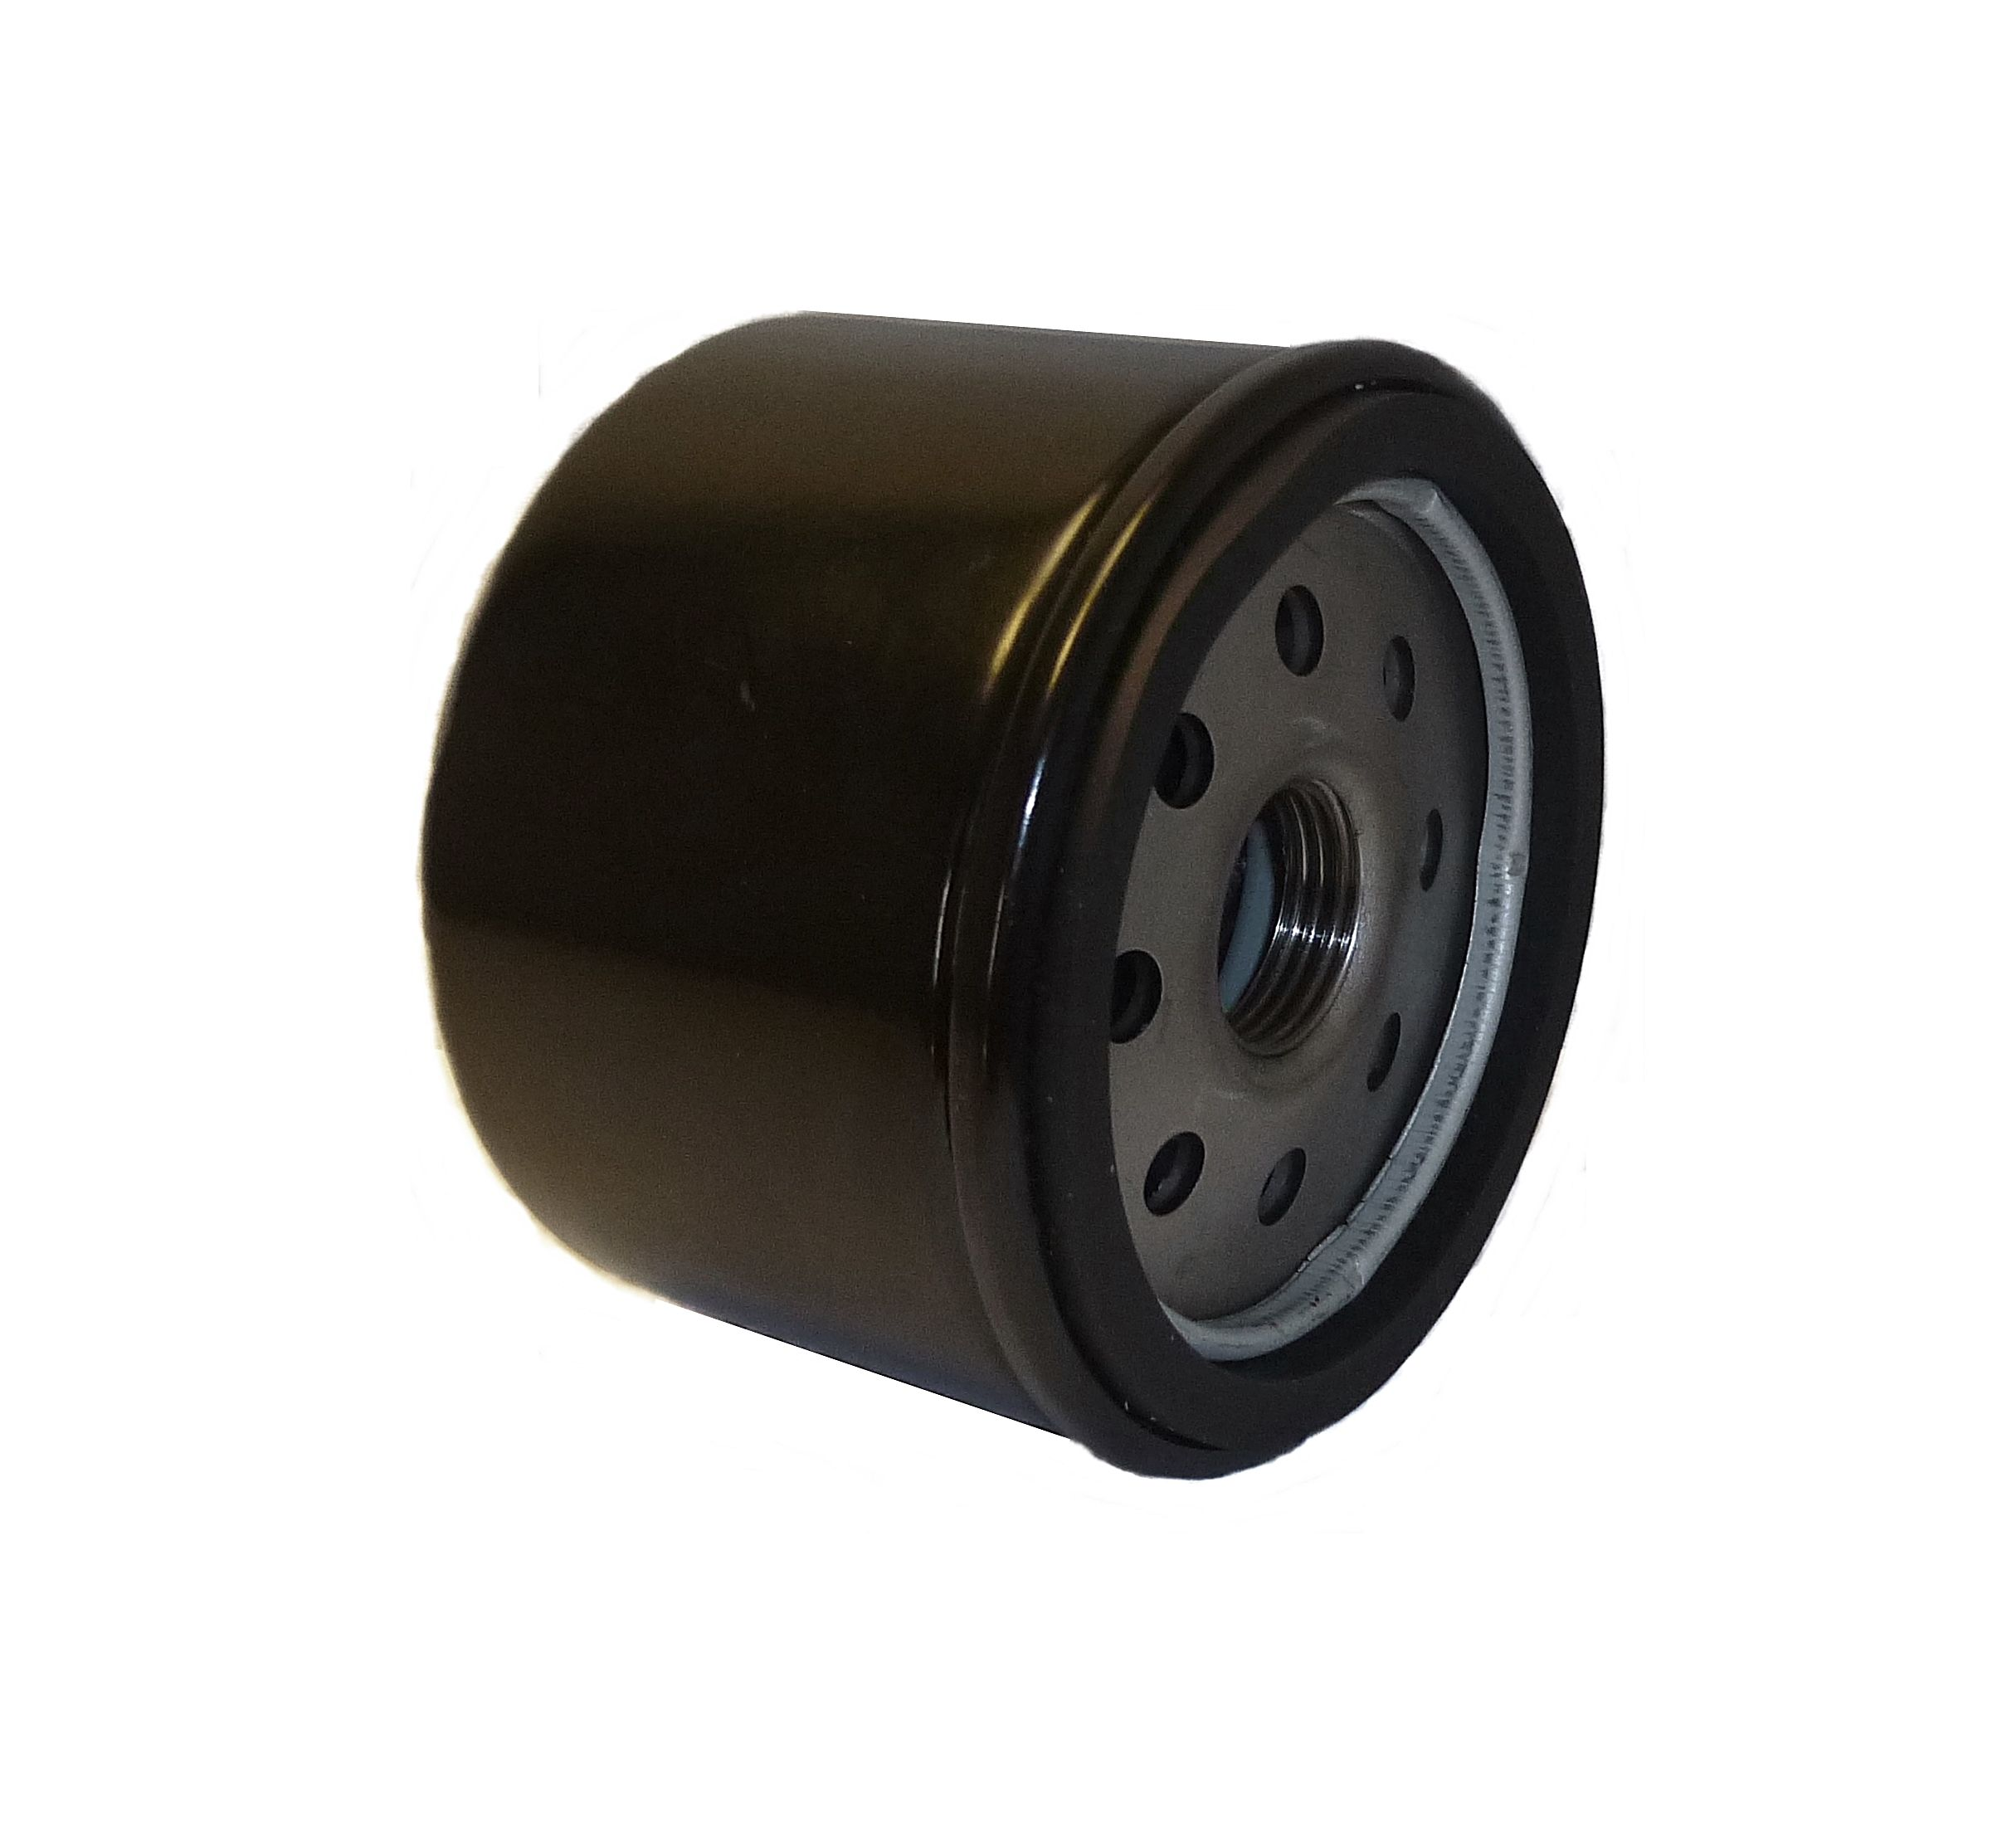 Oil Filter for Briggs & Stratton Intek, Vanguard Engines Part 492932S,  492932, 492056, 696854